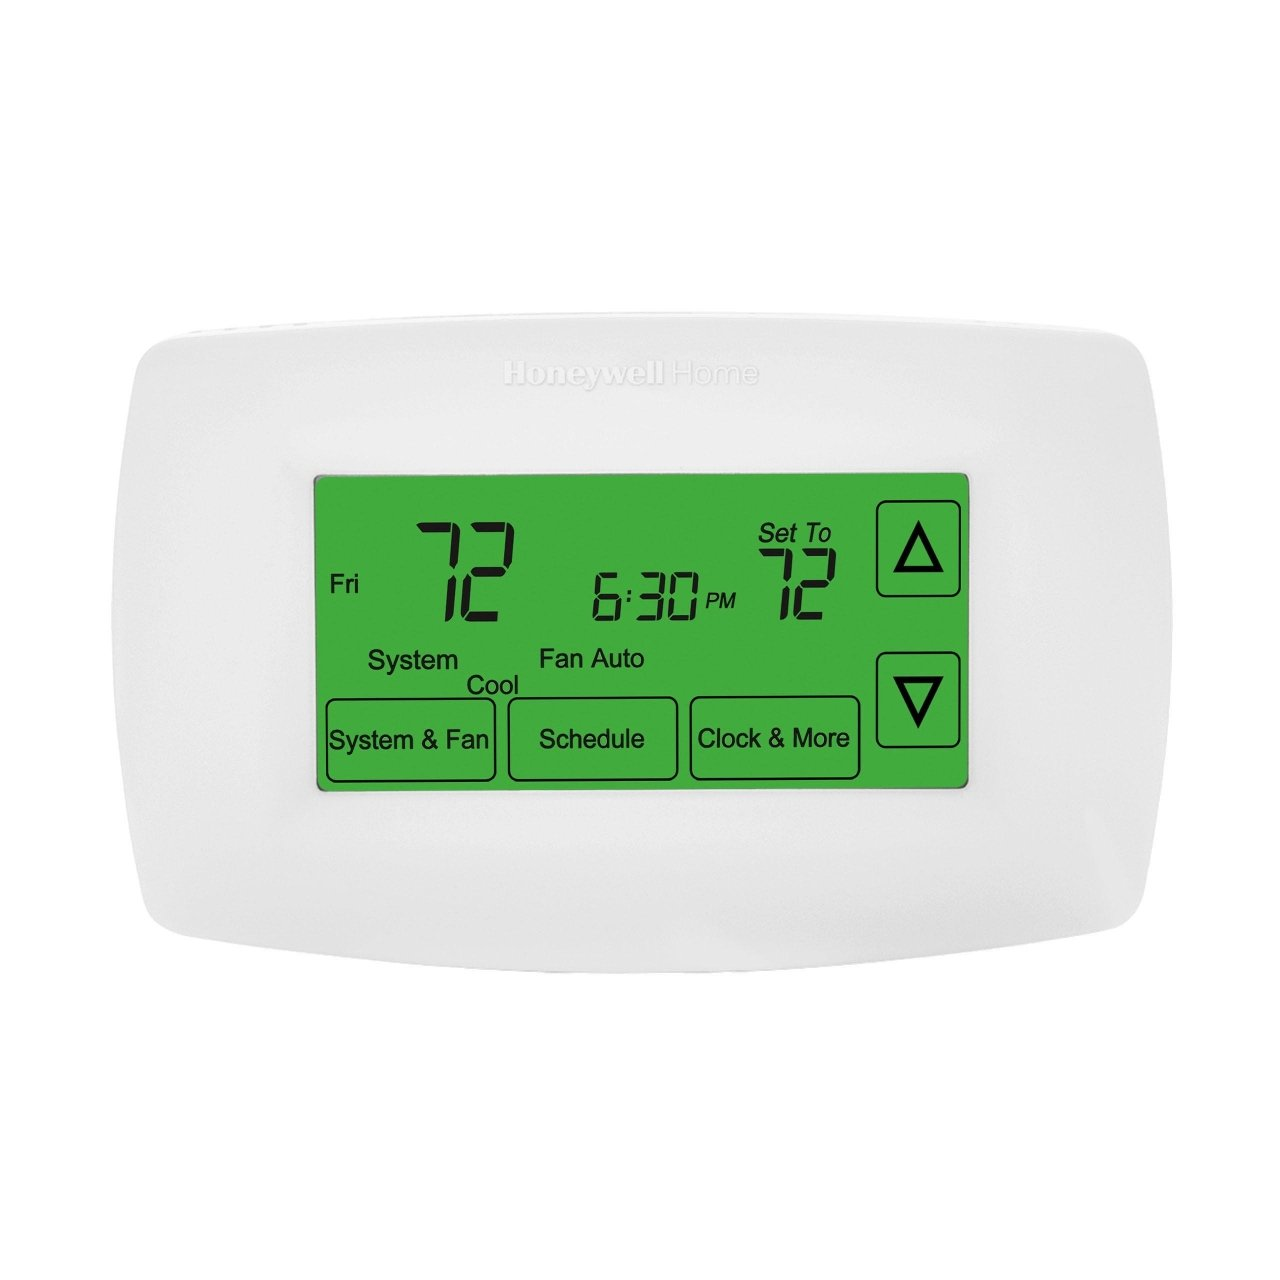 Touchscreen 7 Day Programmable Thermostat Honeywell Home